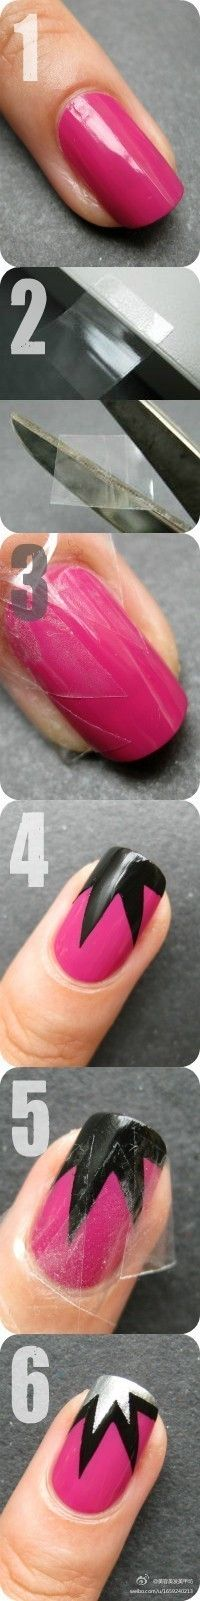 ...Comics Book, French Manicures, Nails Design, Nails Ideas, Nails Polish, Tape Nails, Nails Art Design, Diy Nails, Nails Tutorials